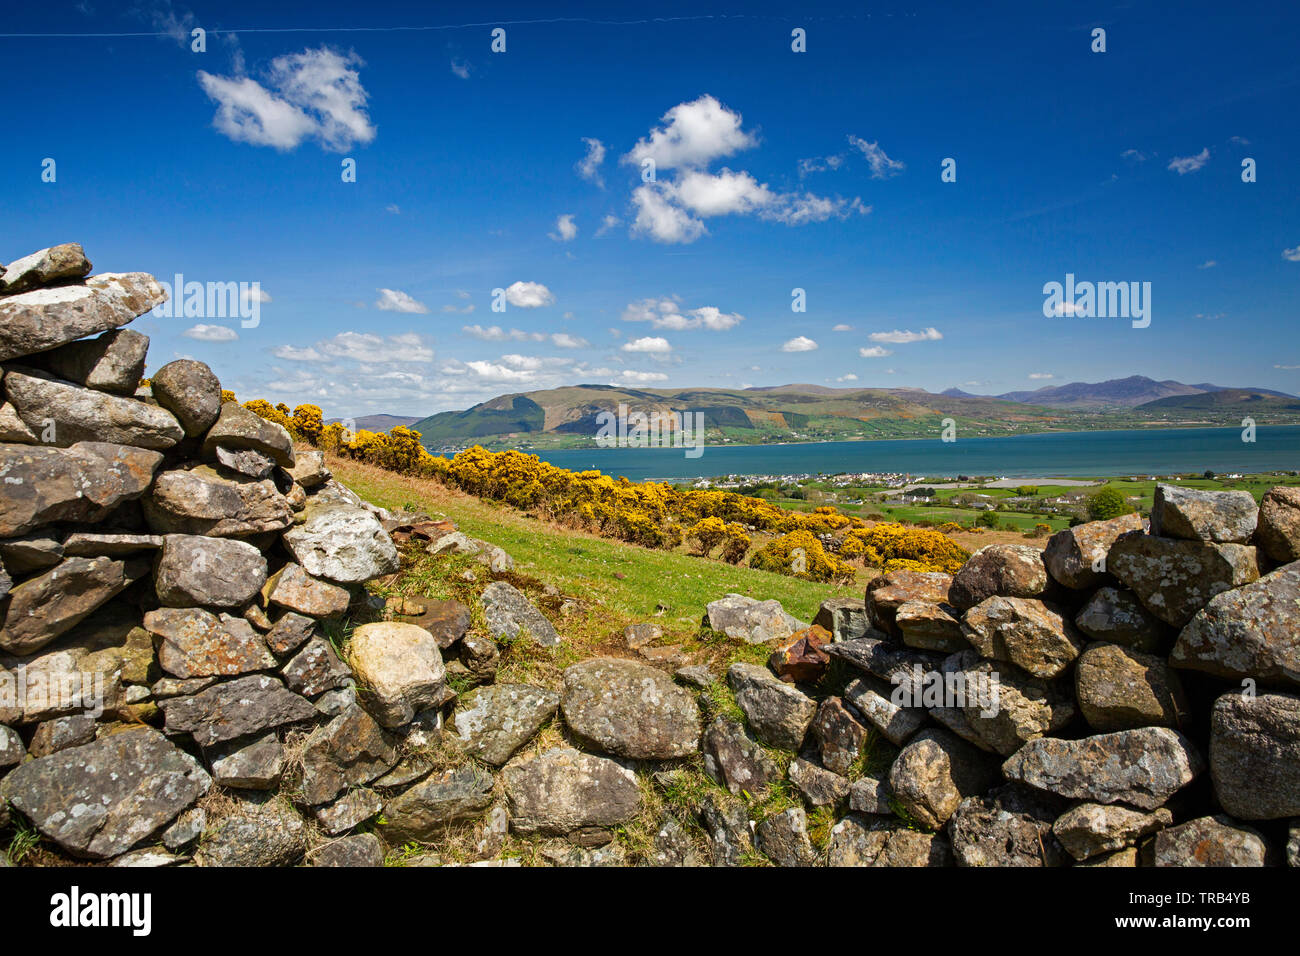 Ireland, Co Louth, Cooley Peninsula, Rooskey, elevated view across Carlingford Lough to Mourne Mountains from abandoned pre-famine village - Stock Image